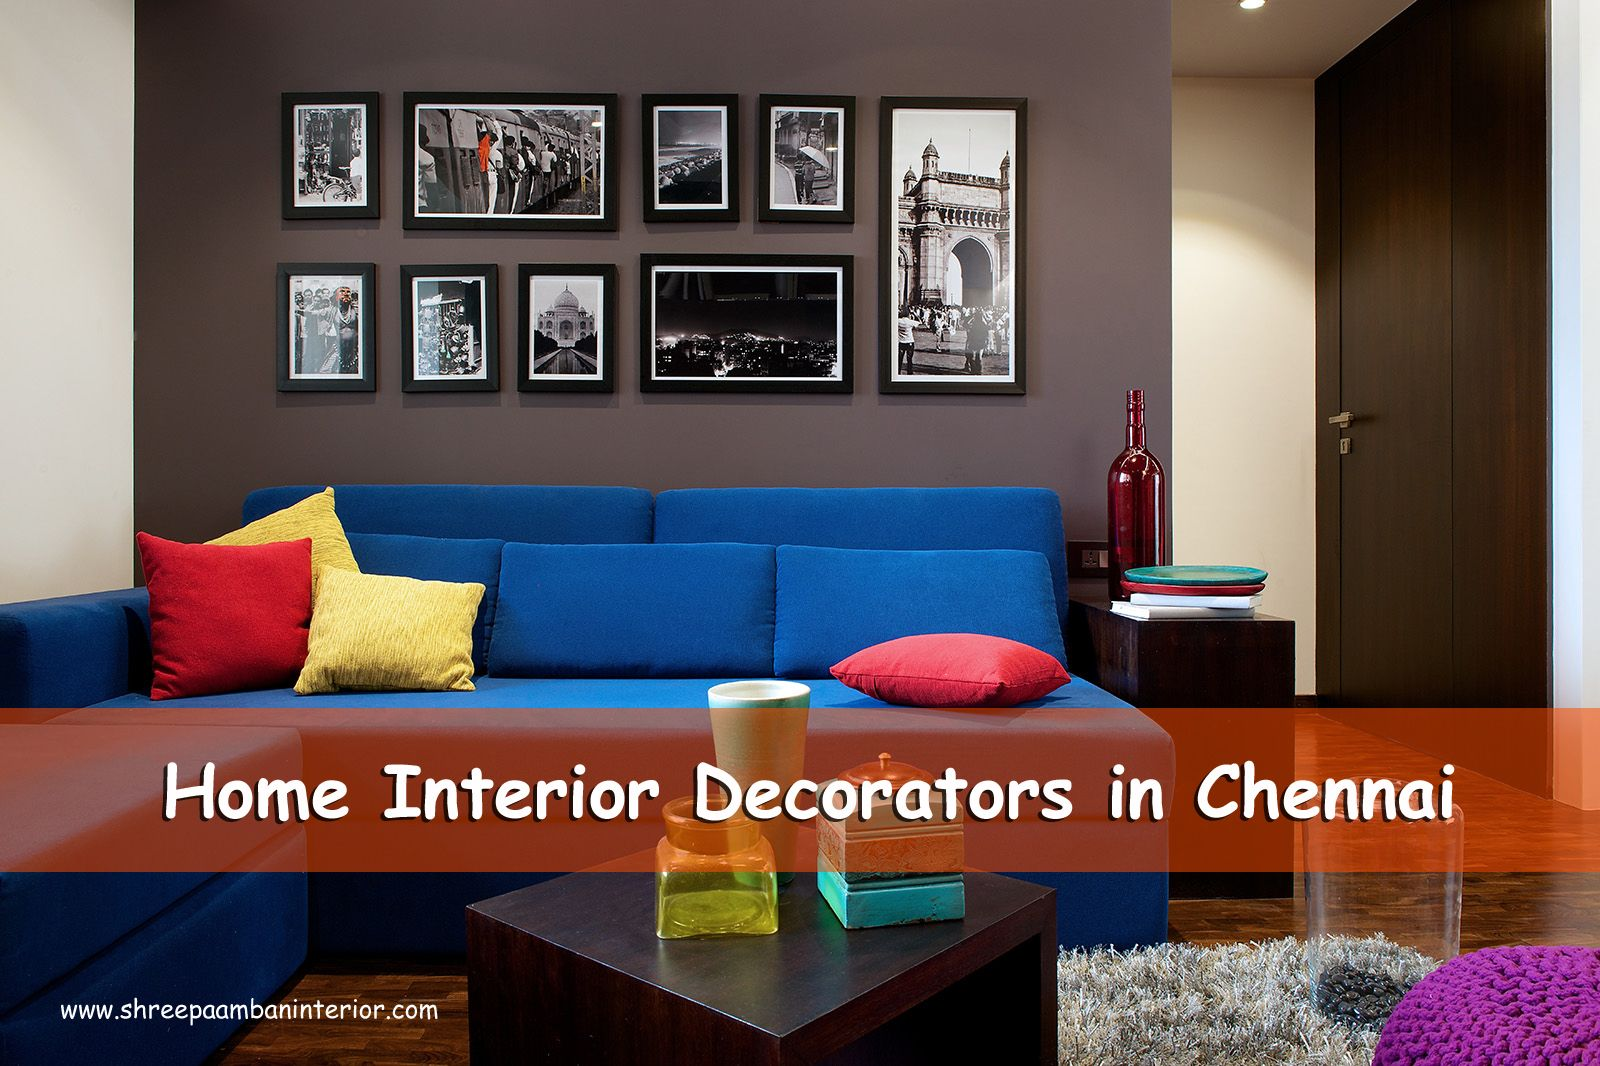 Home Interior Decorators in Chennai. #HomeInteriorDecoratorsInChennai. #ShreePaambanInterior